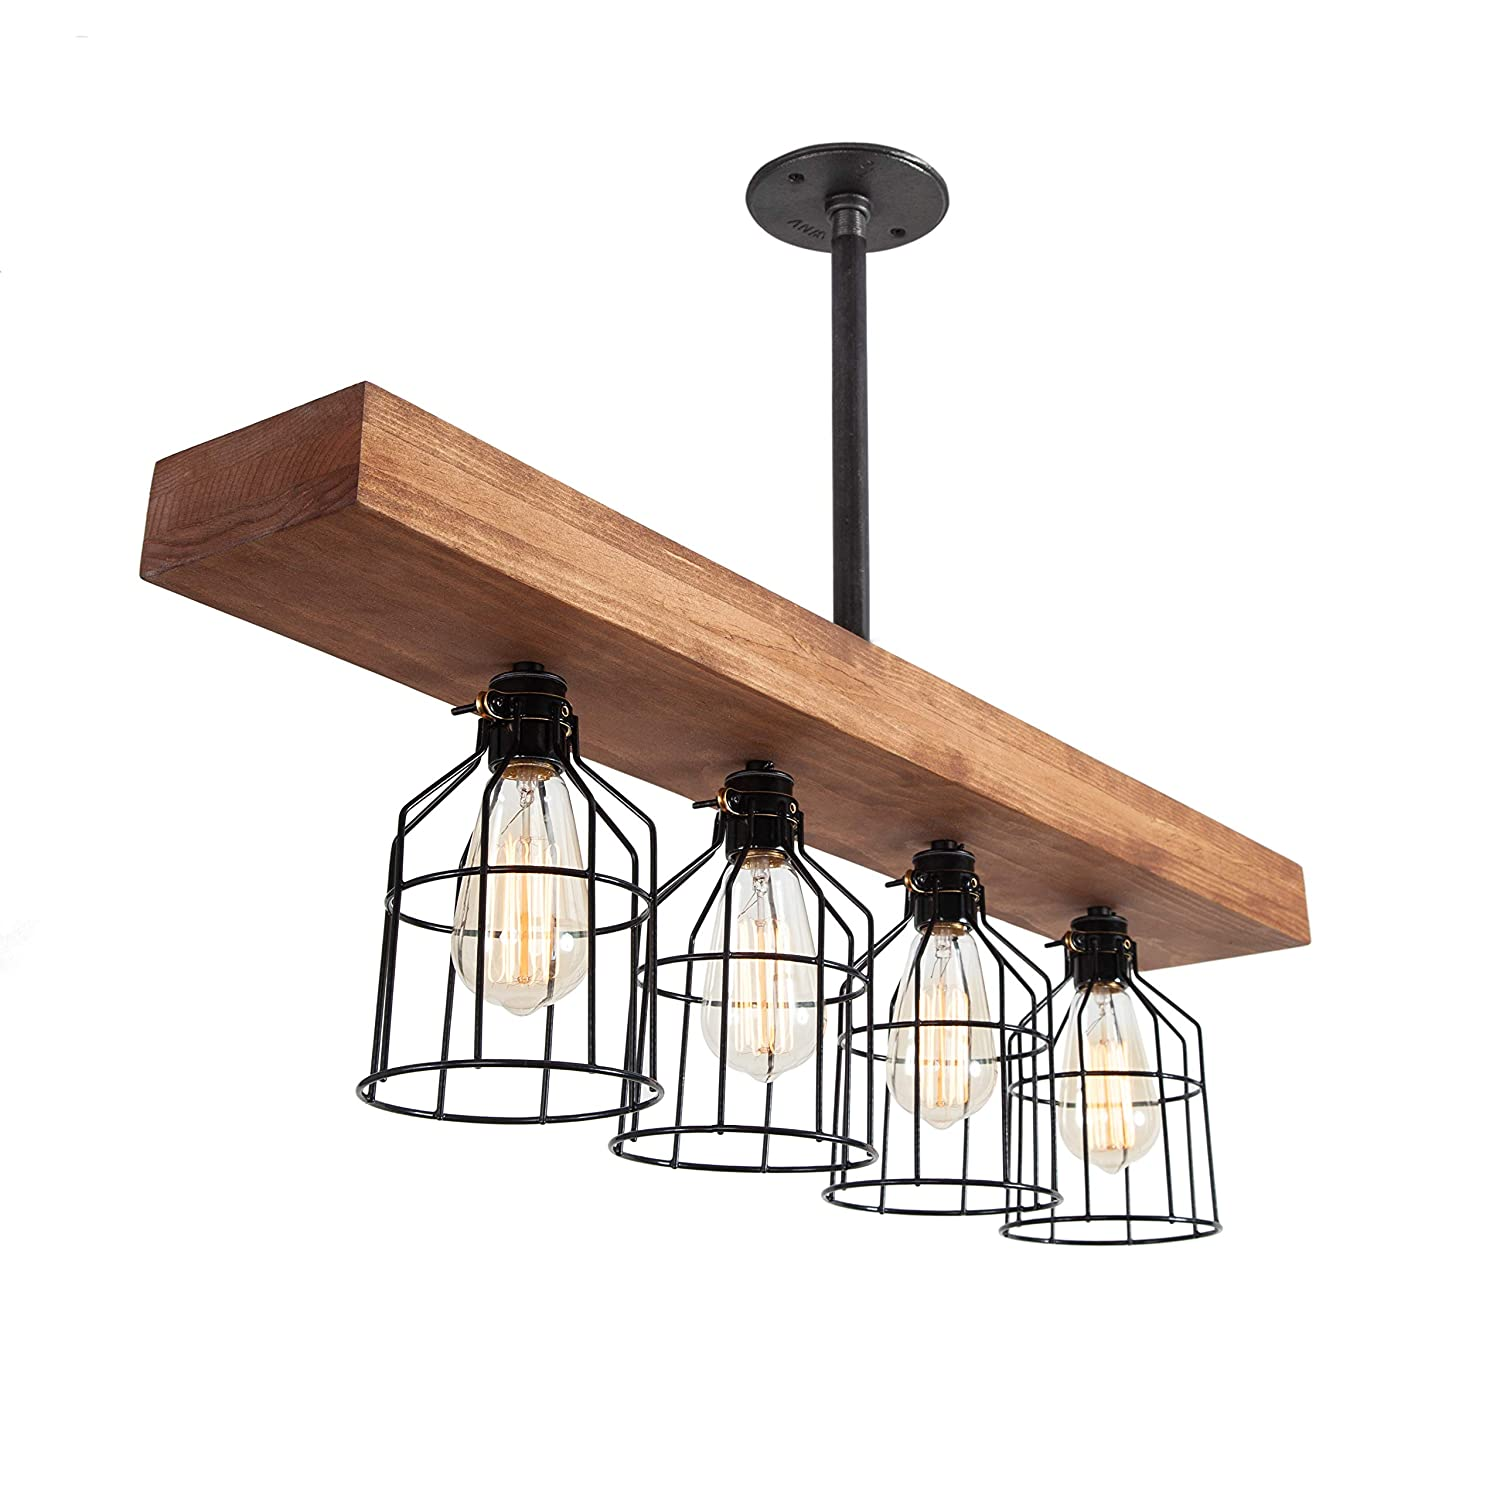 West Ninth Vintage Pendant Farmhouse Chandelier Fixture – Fayette Triple Wood Beam Light – Rustic Lighting for Kitchen Island Lighting, Dining Room, Bar – Wooden Vintage Light with Edison Cages